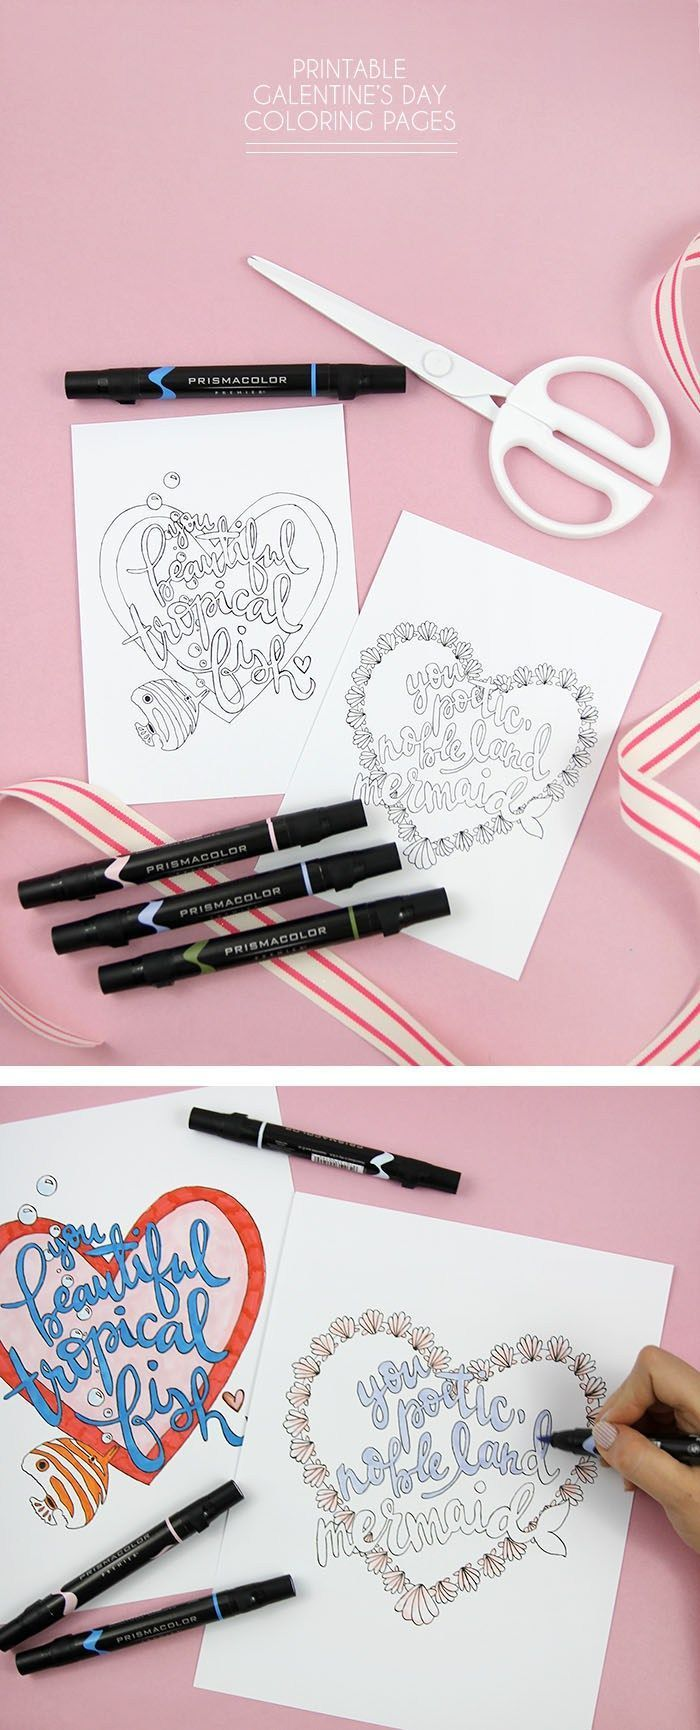 Printable Galentine S Day Coloring Pages Crafting Tutorials To Try